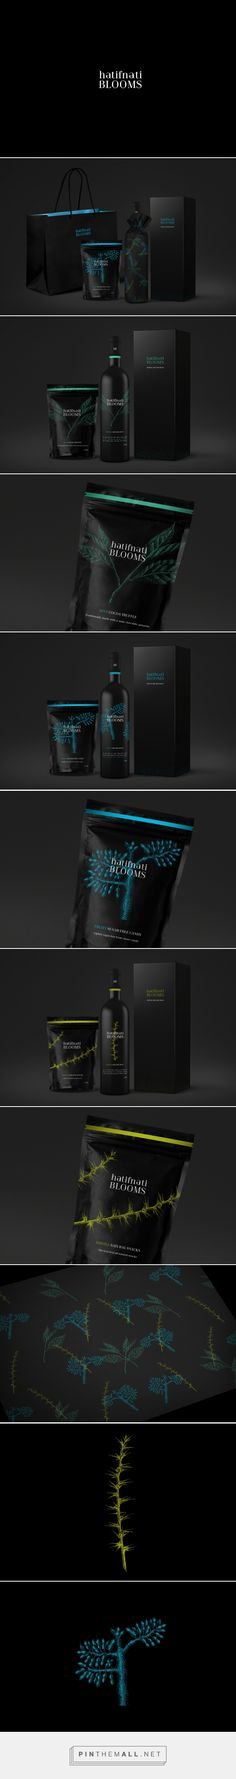 HATIFNATI BLOOMS GOODIES packaging on Behance curated by Packaging Diva PF. Hatifnati BLOOMS is a concept design for luxury goodies. Idea was to create special edition of wines and sweets in a dark and mysterious moods.